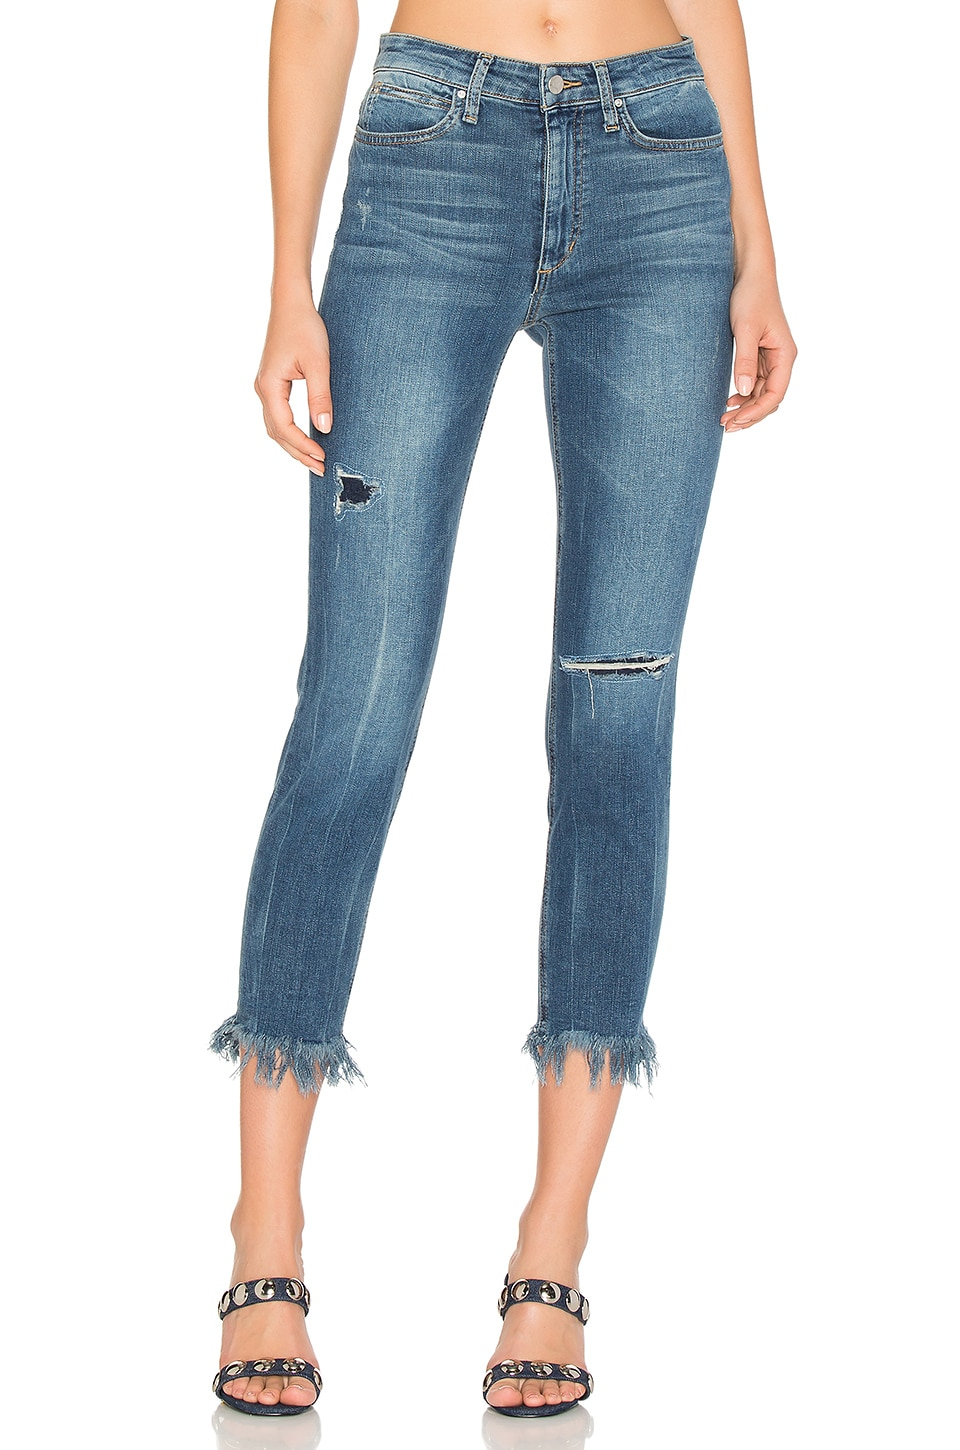 The Charlie High Rise Fray Hem Crop by Joe's Jeans